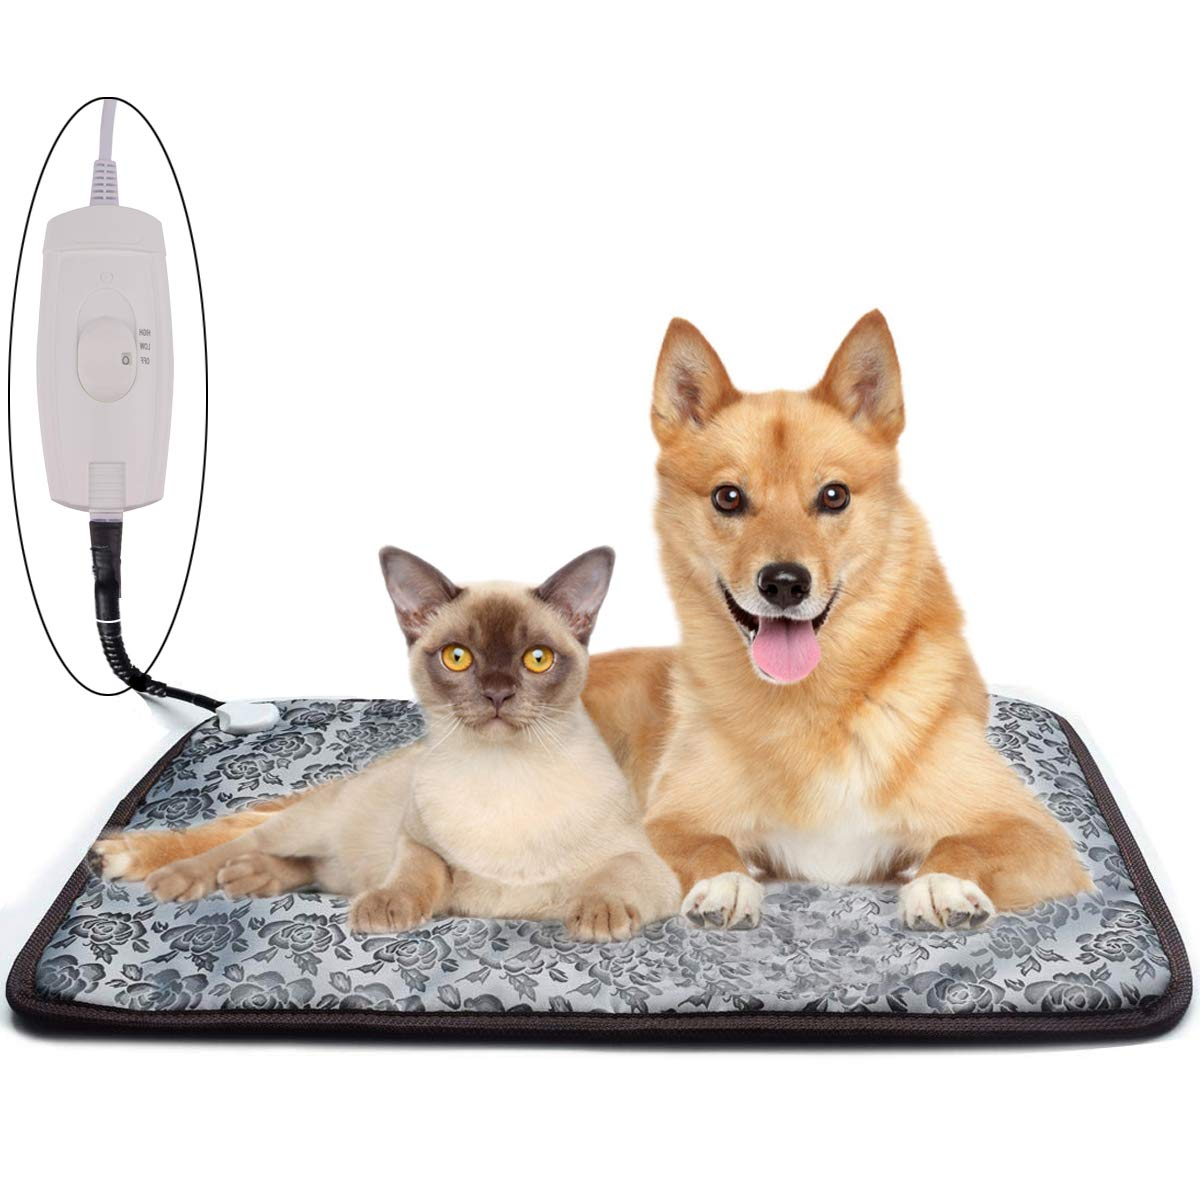 Homello Pet Heating Pad for Cats Dogs, Waterproof Electric Heating Mat Indoor, Adjustable Warming Mat, Pets Heated Bed with Chew Resistant Steel Cord (33 x 21) by Homello